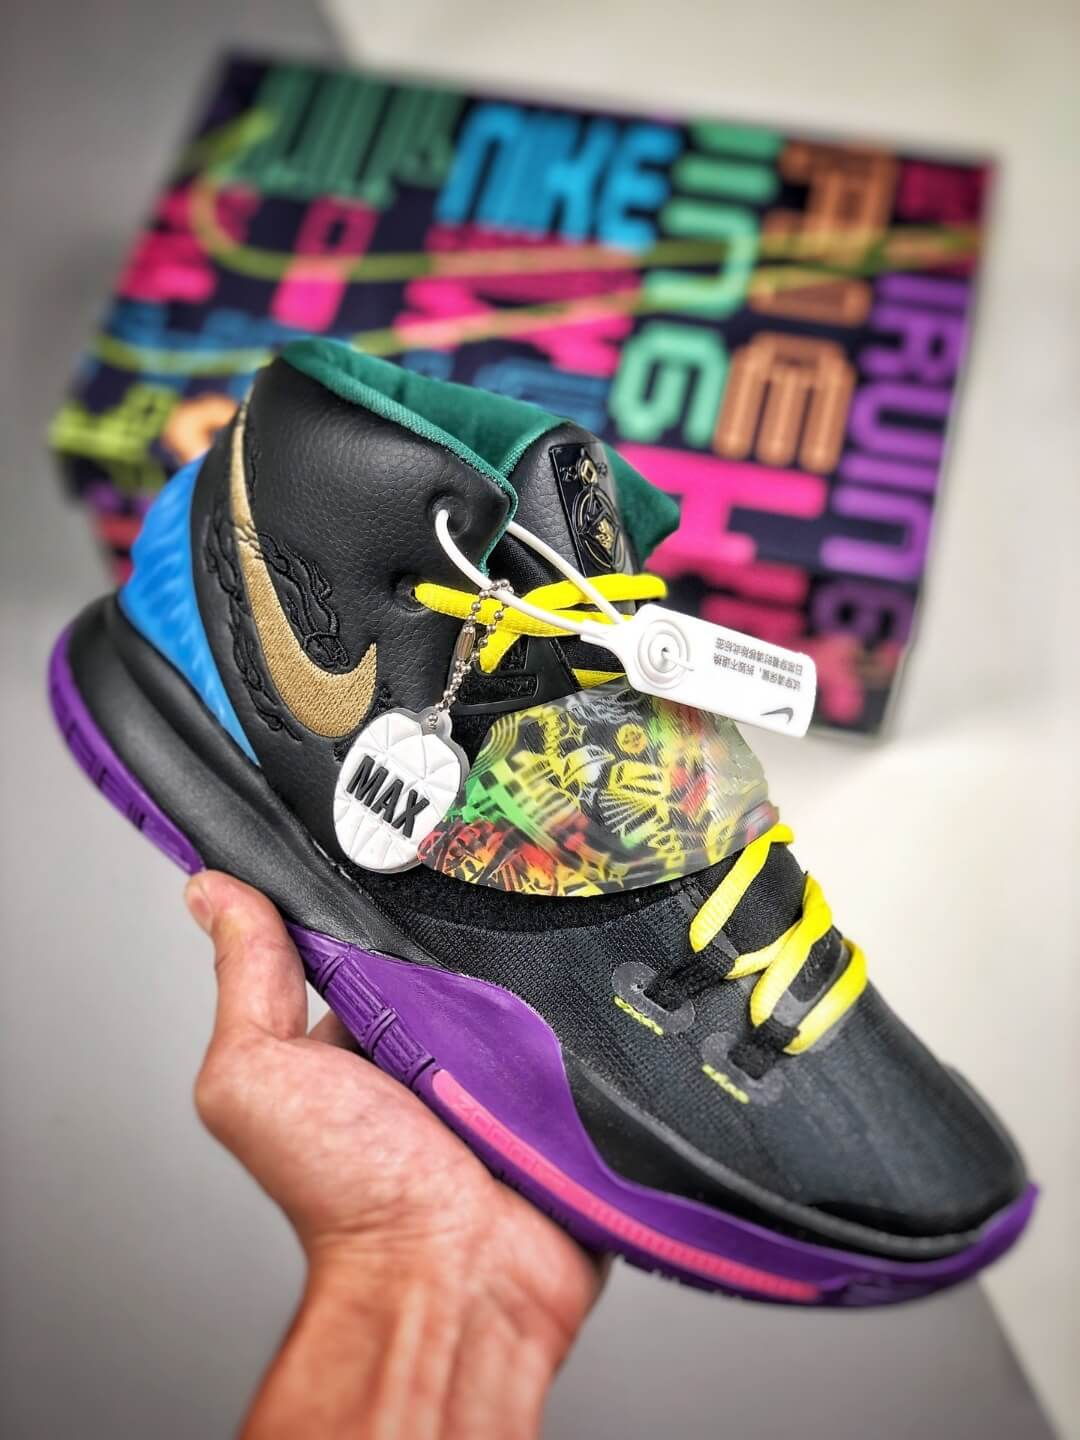 The Nike Kyrie 6 Chinese New Year Sneaker Multicolor Graphic Black Mesh Leather Upper Purple Outsole Replica Shoes 01